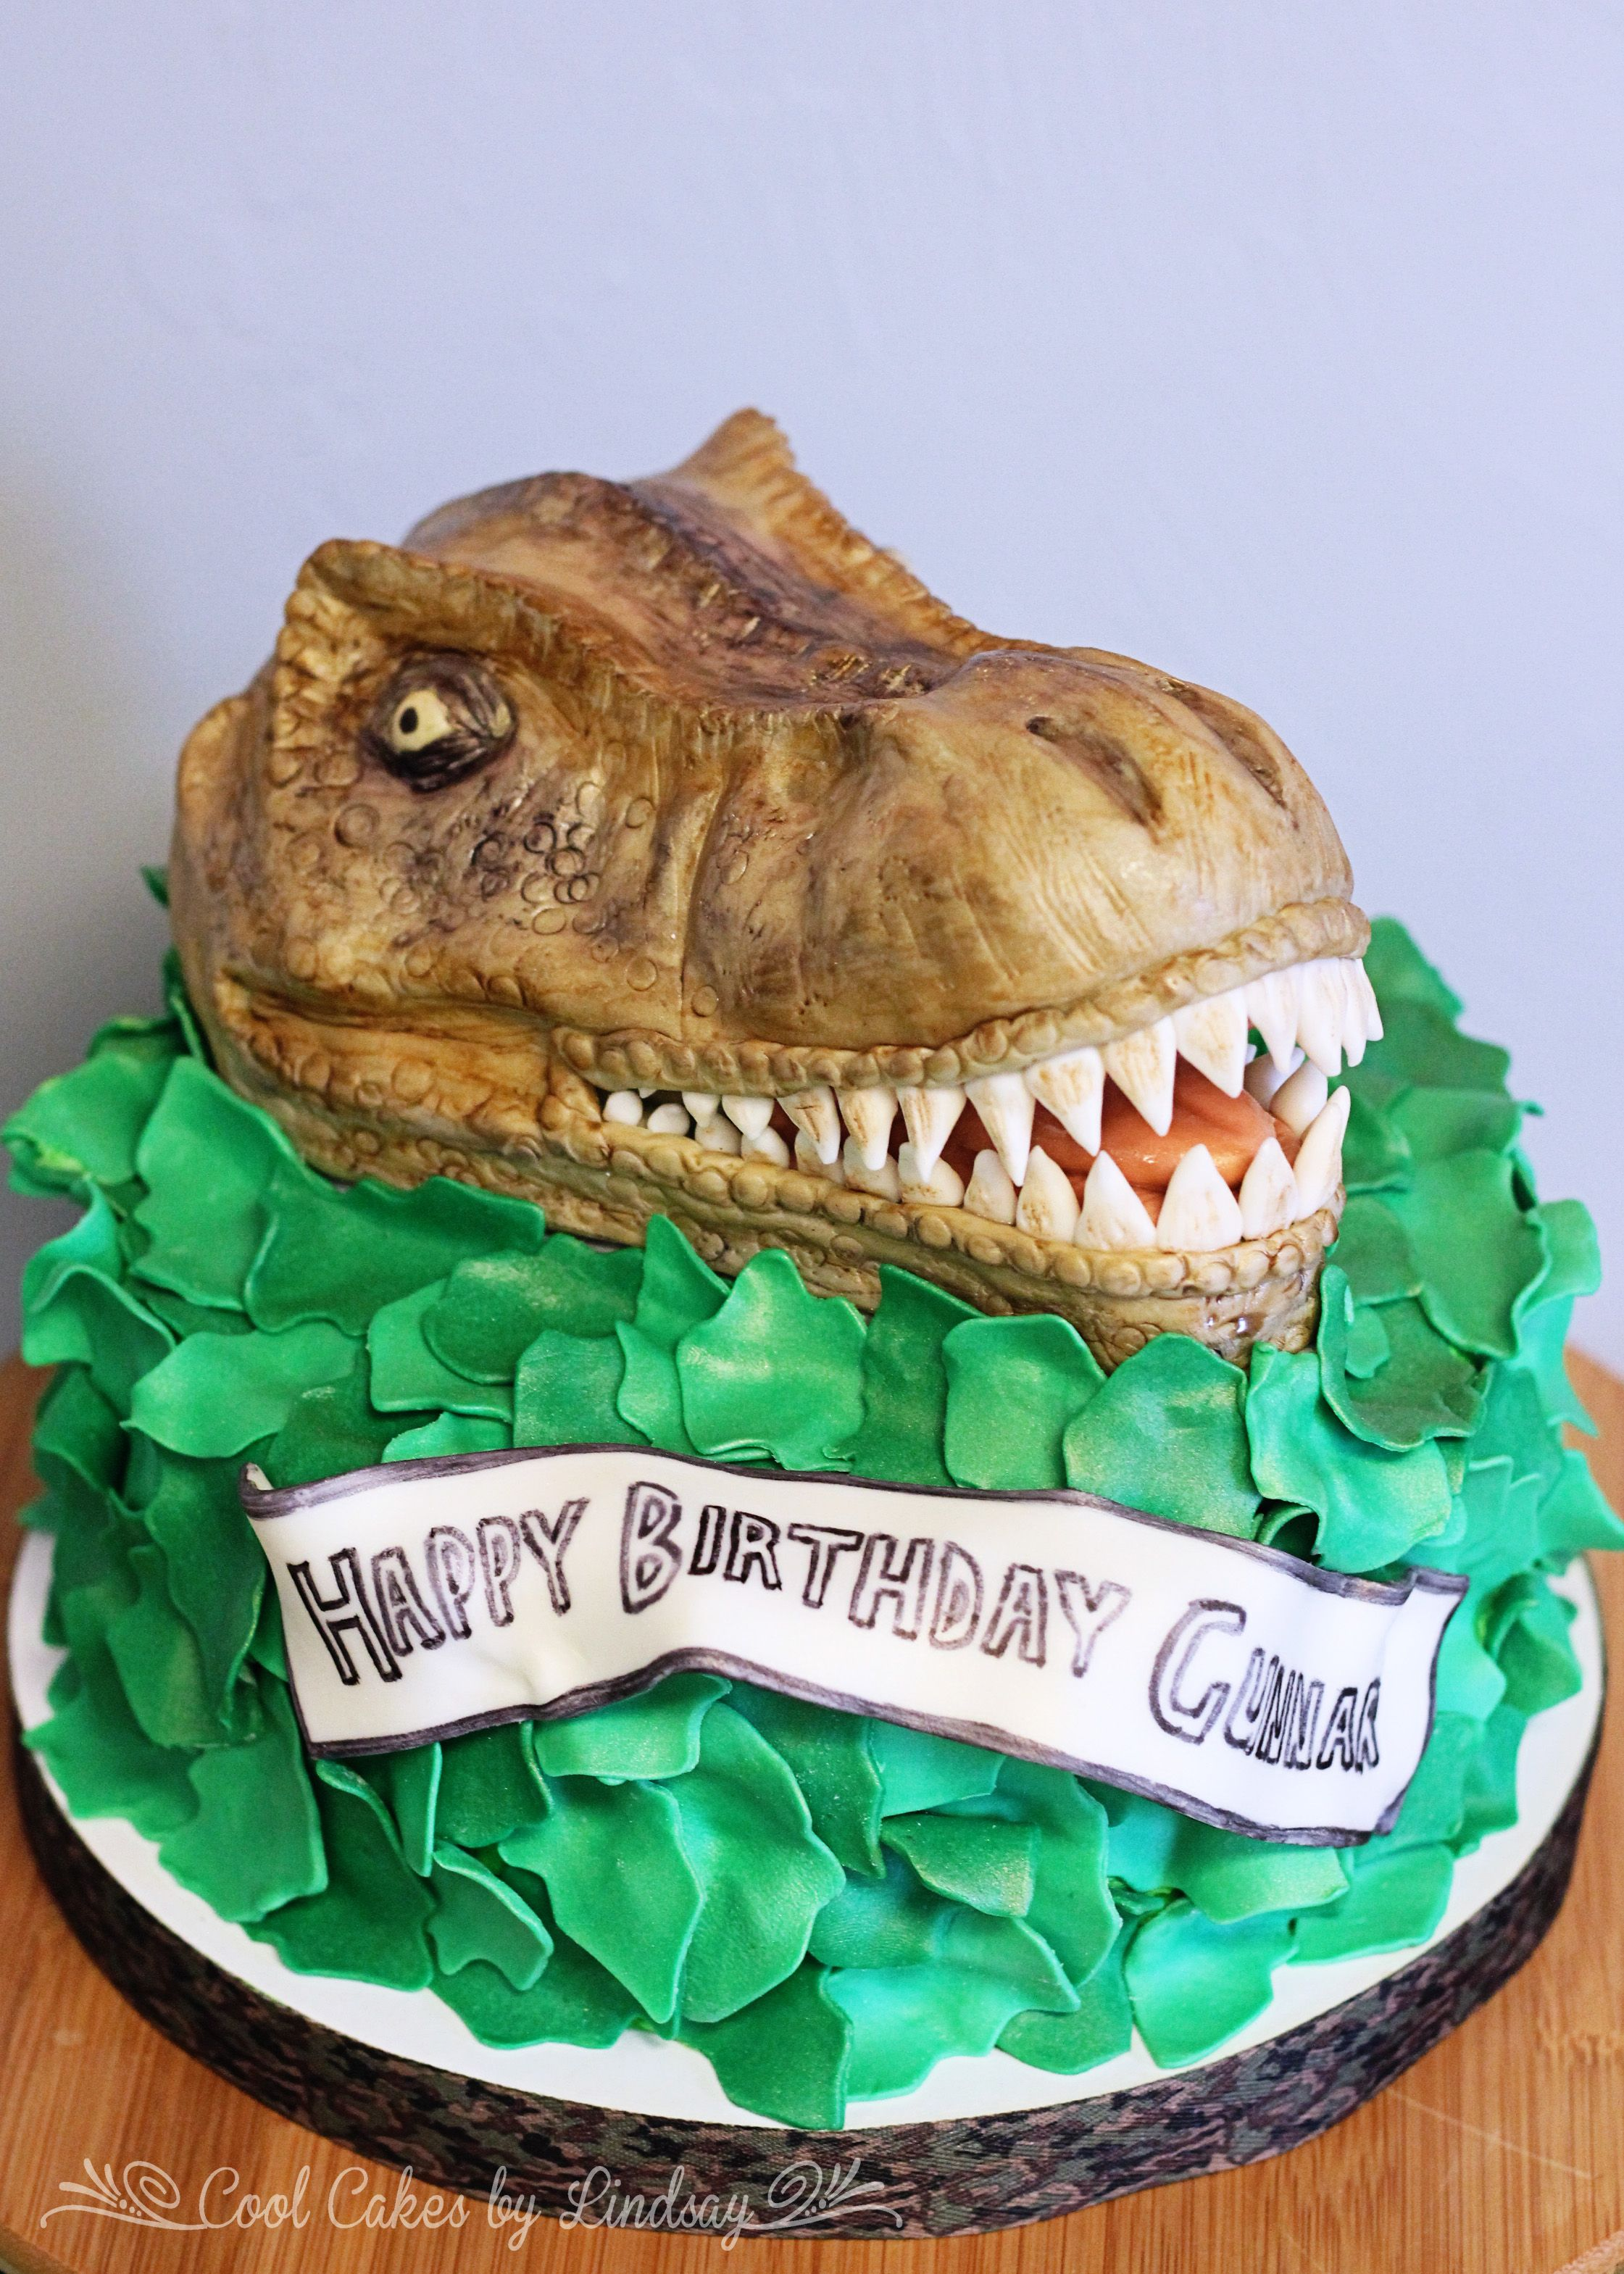 T Rex Cake All Edible Sculpted Head From Fruity Pebbles Treats